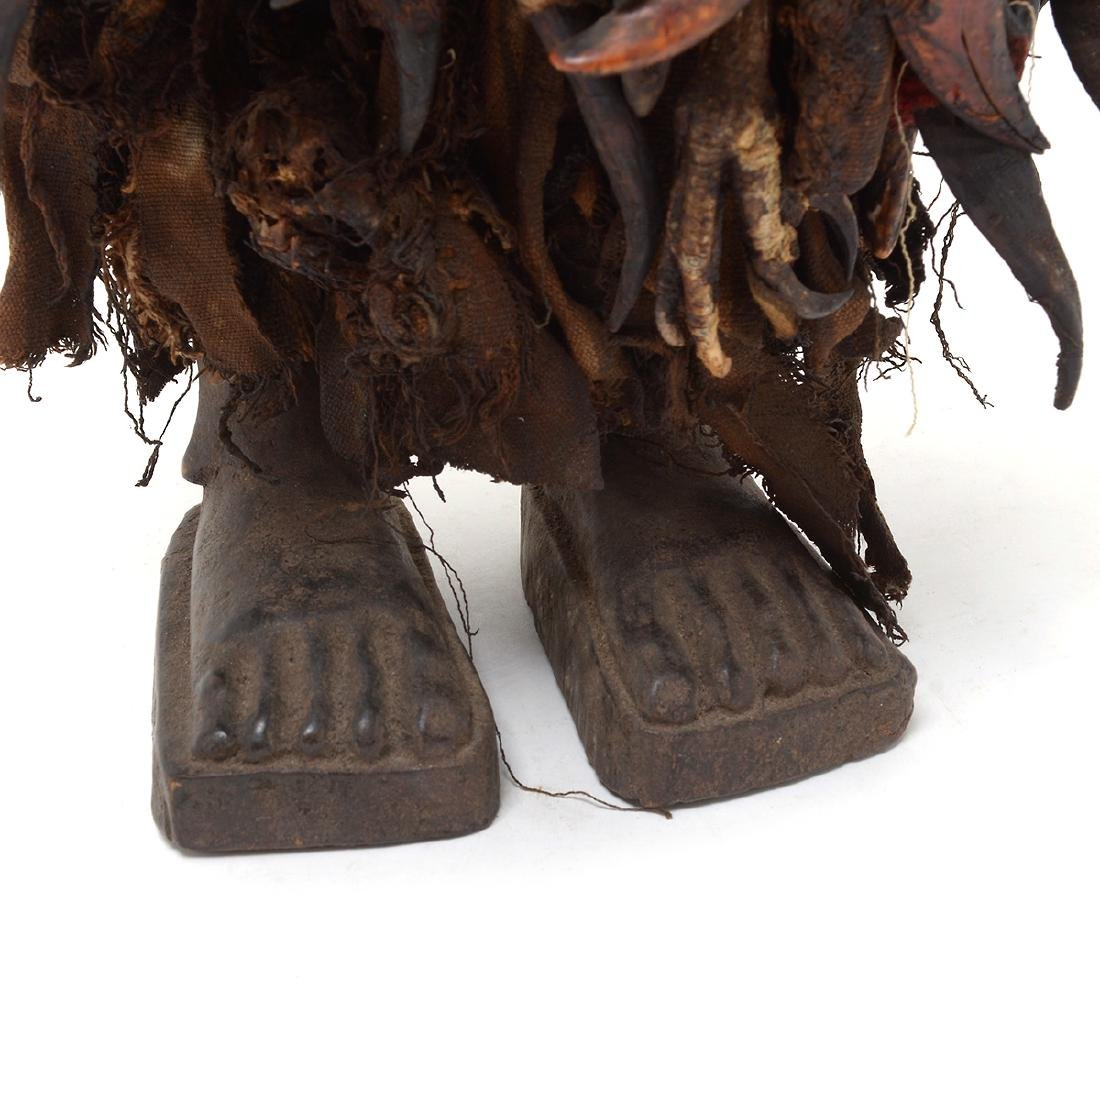 Zande Carved Wood Figure Fitted with Claw Textile. - 3